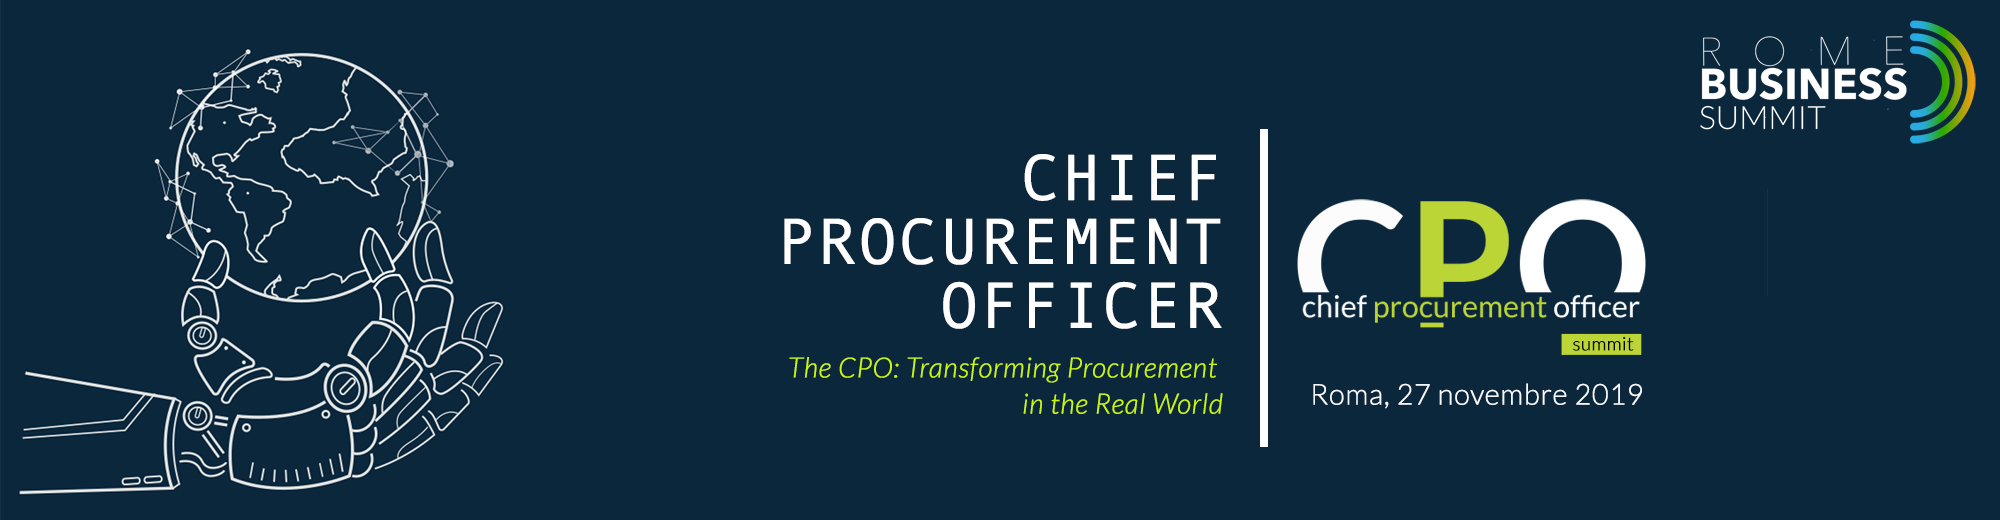 RBS - Chief Procurement Officer Summit